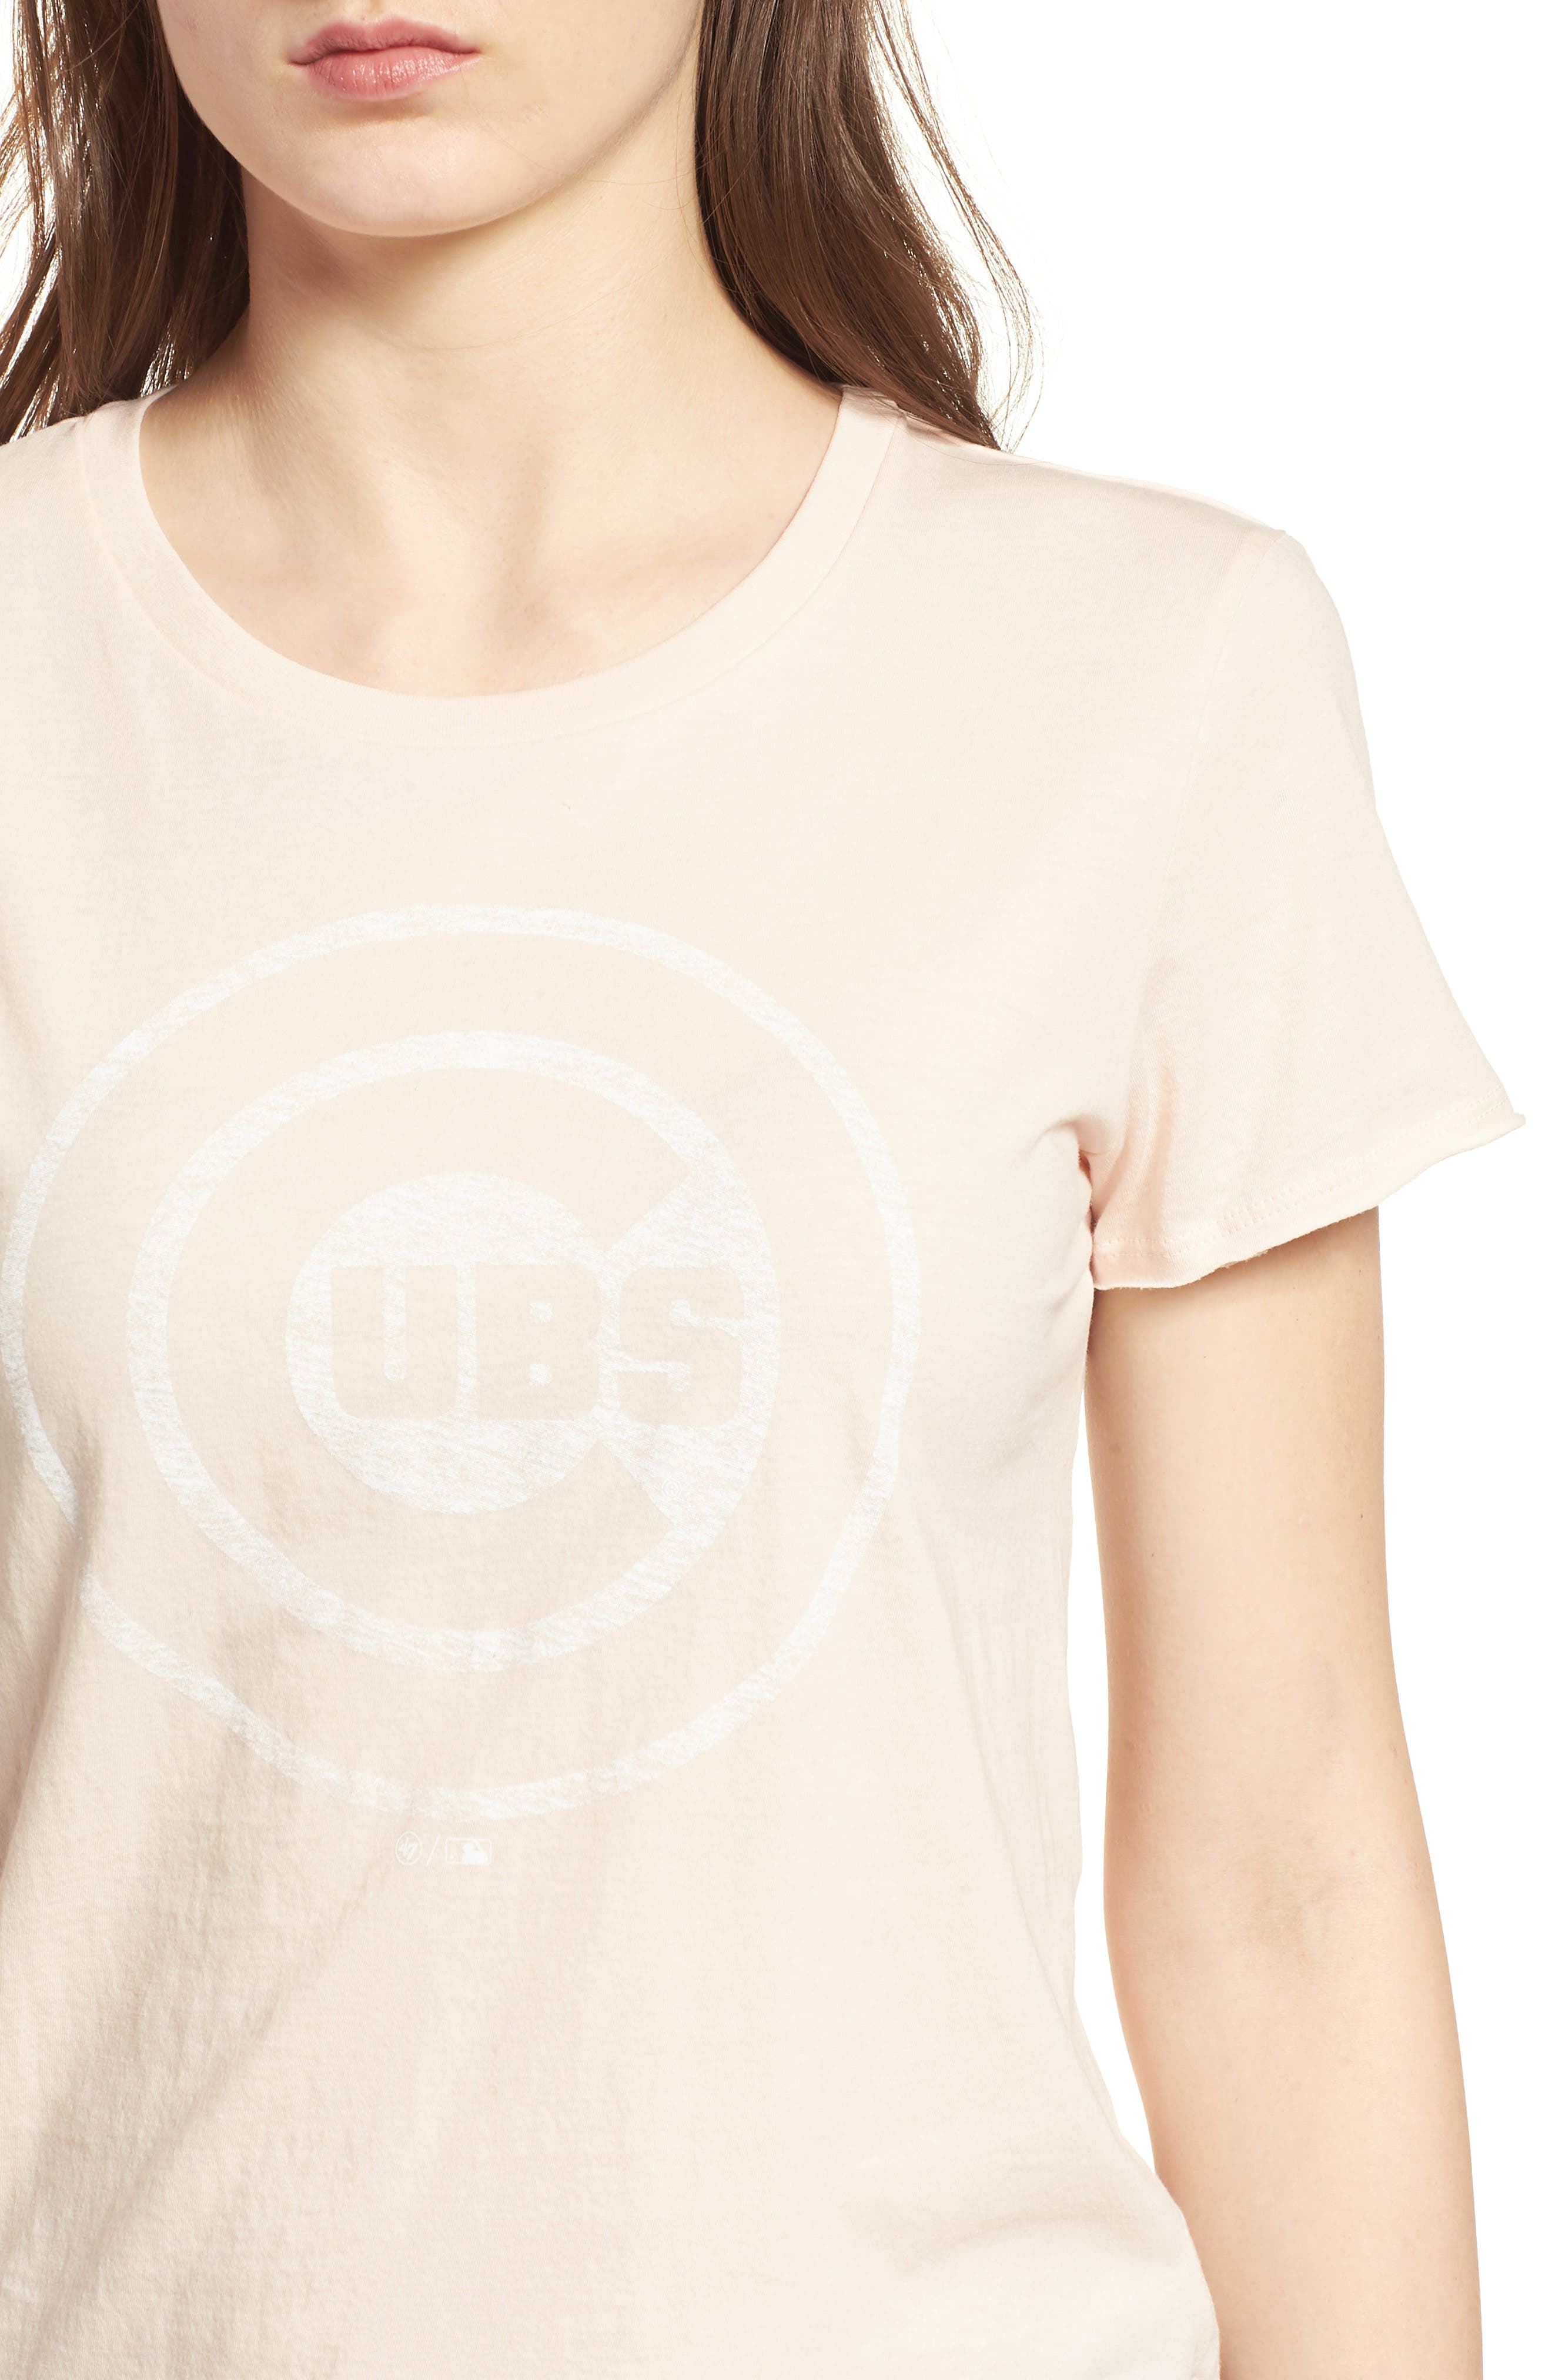 Chicago Cubs Fader Letter Tee,                             Alternate thumbnail 4, color,                             Blush